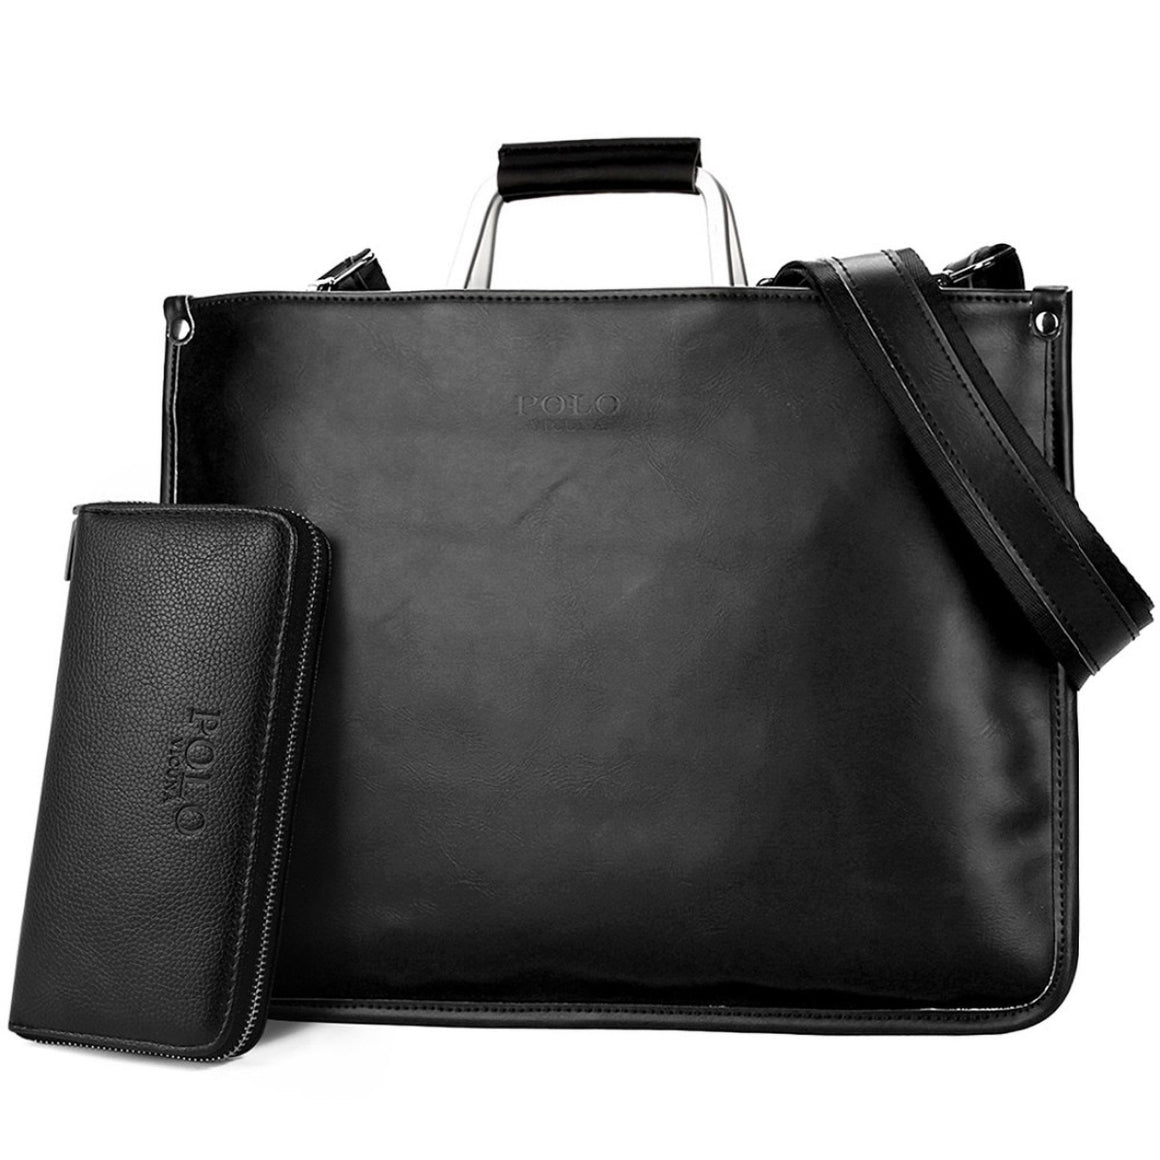 VICUNA POLO Simple Design Leather Men Briefcase With Metal Handle Business Men Document Bag Classic Office Mens Bags Men Handbag